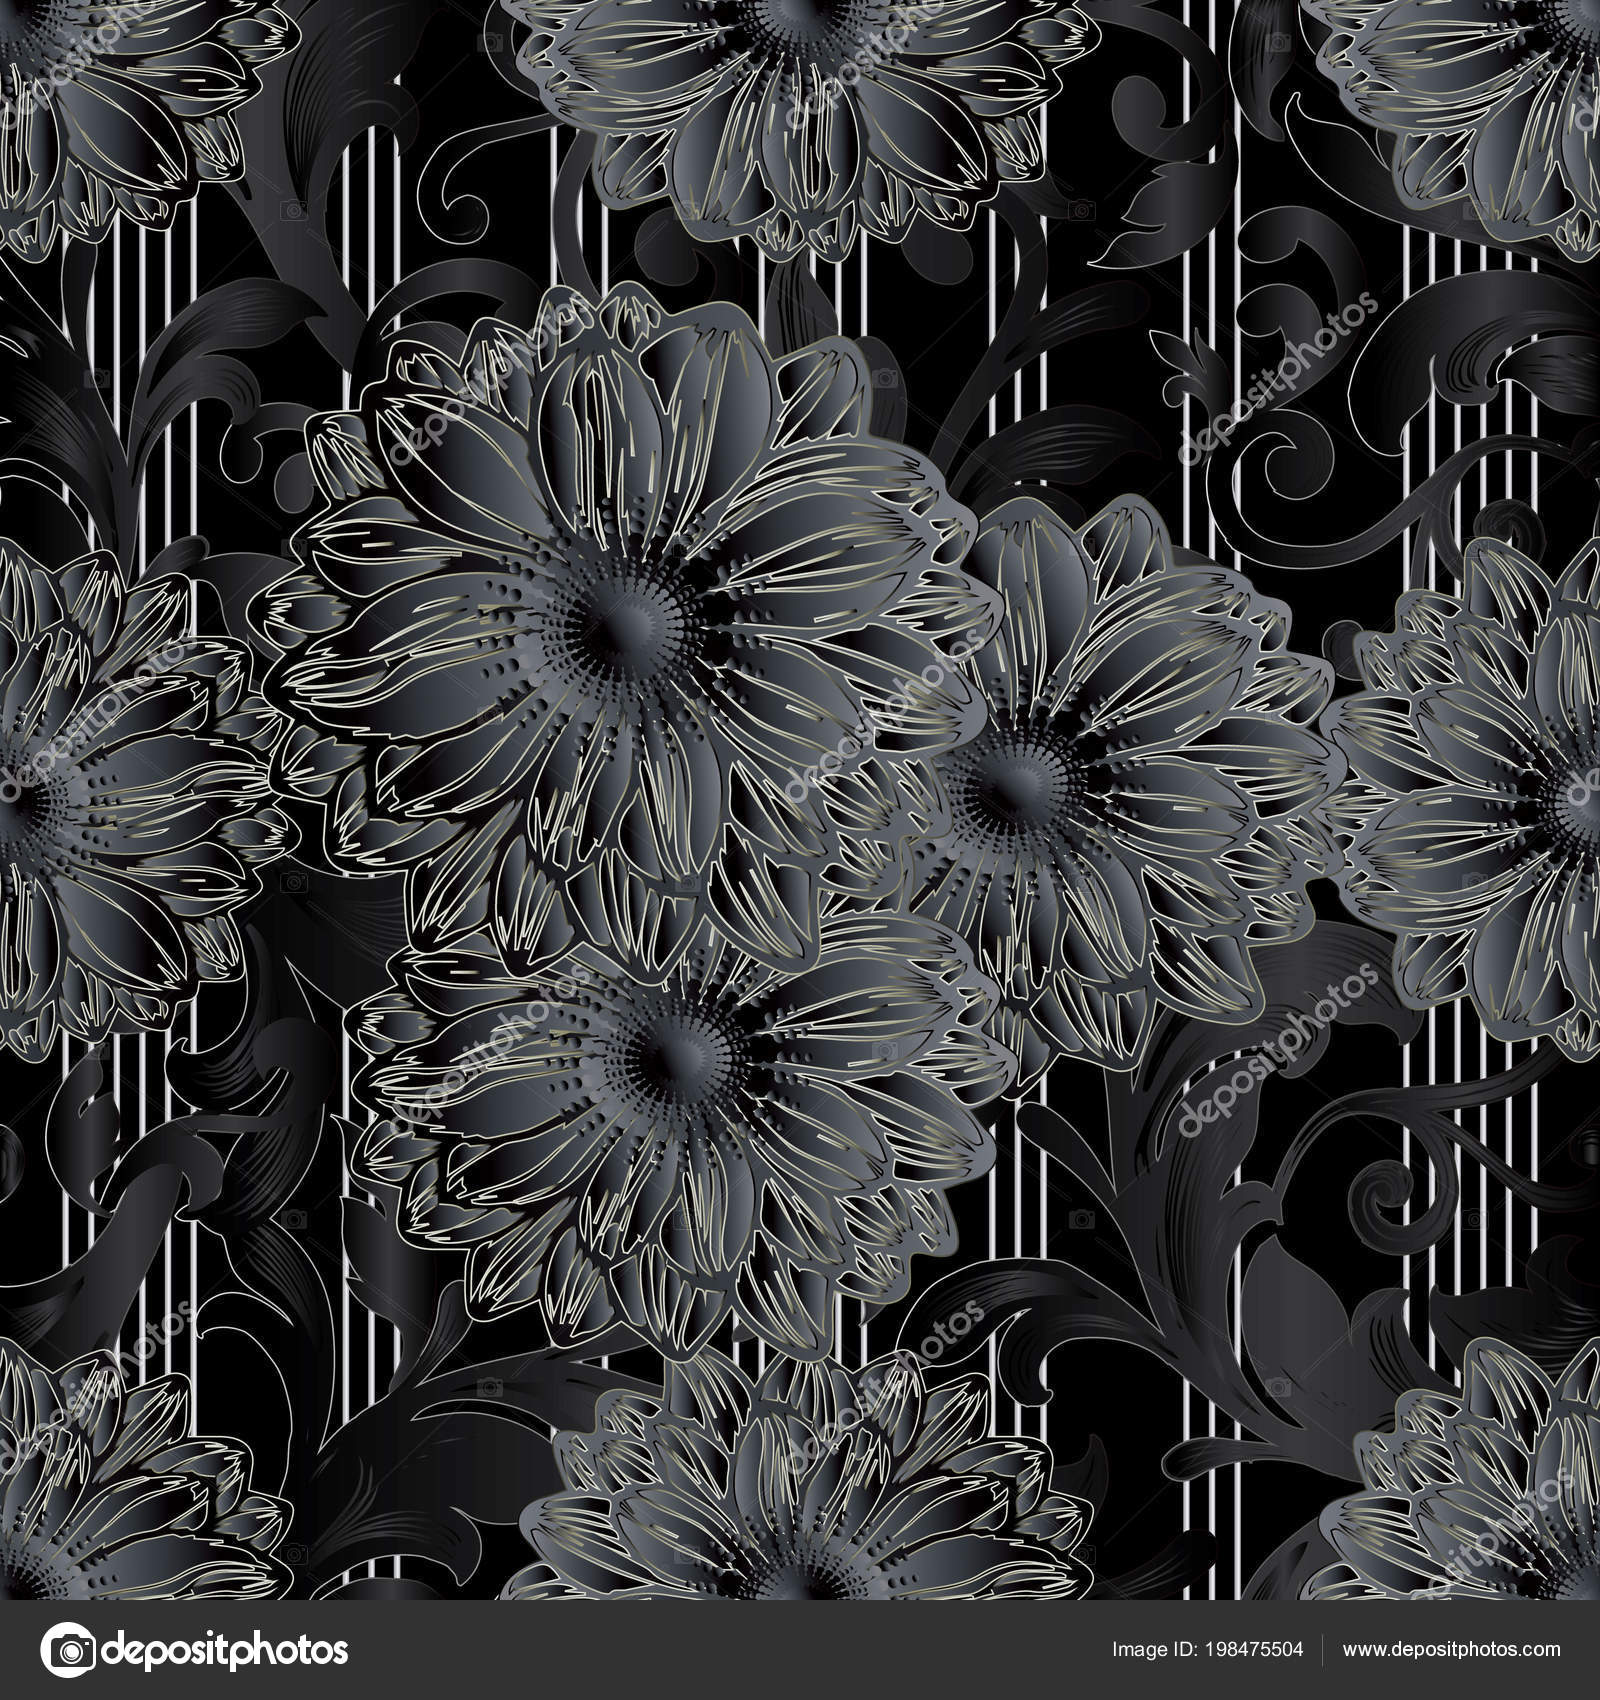 Striped Background Wallpaper Illustration With 3D Black Flowers, Vertical White